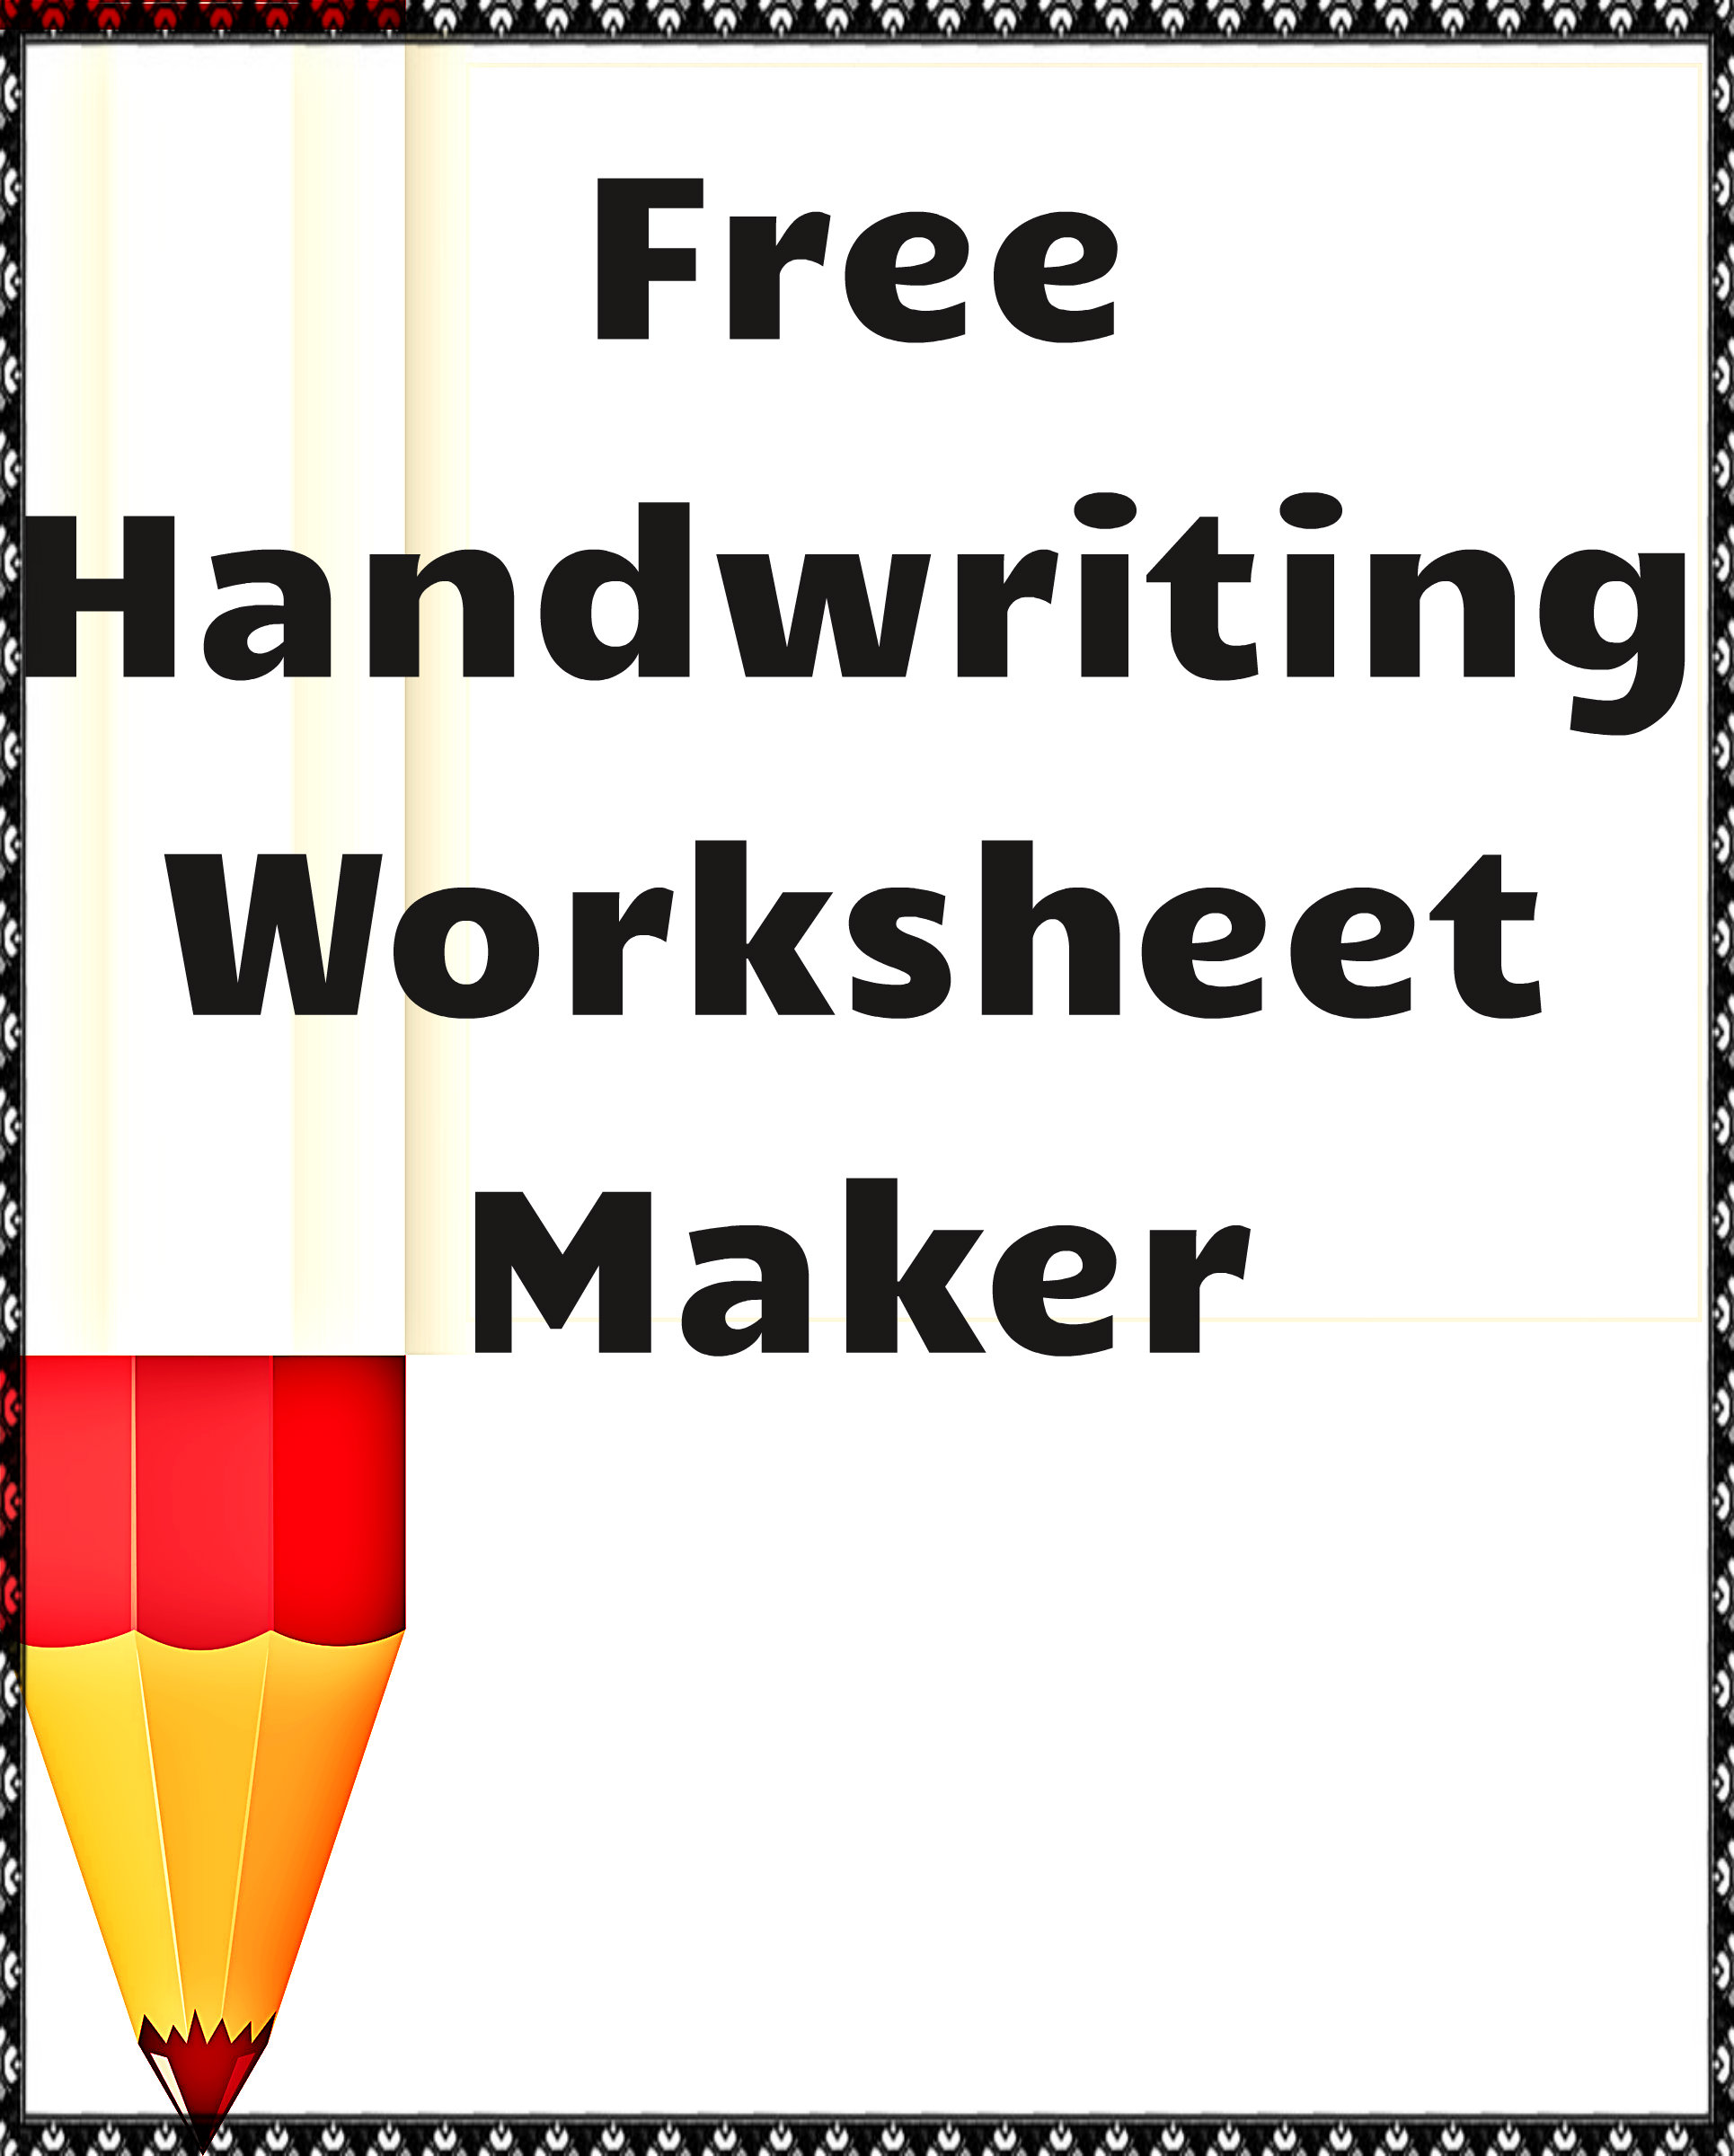 Printables Free Handwriting Worksheet Maker handwriting worksheet maker free classroom tools readyteacher com maker